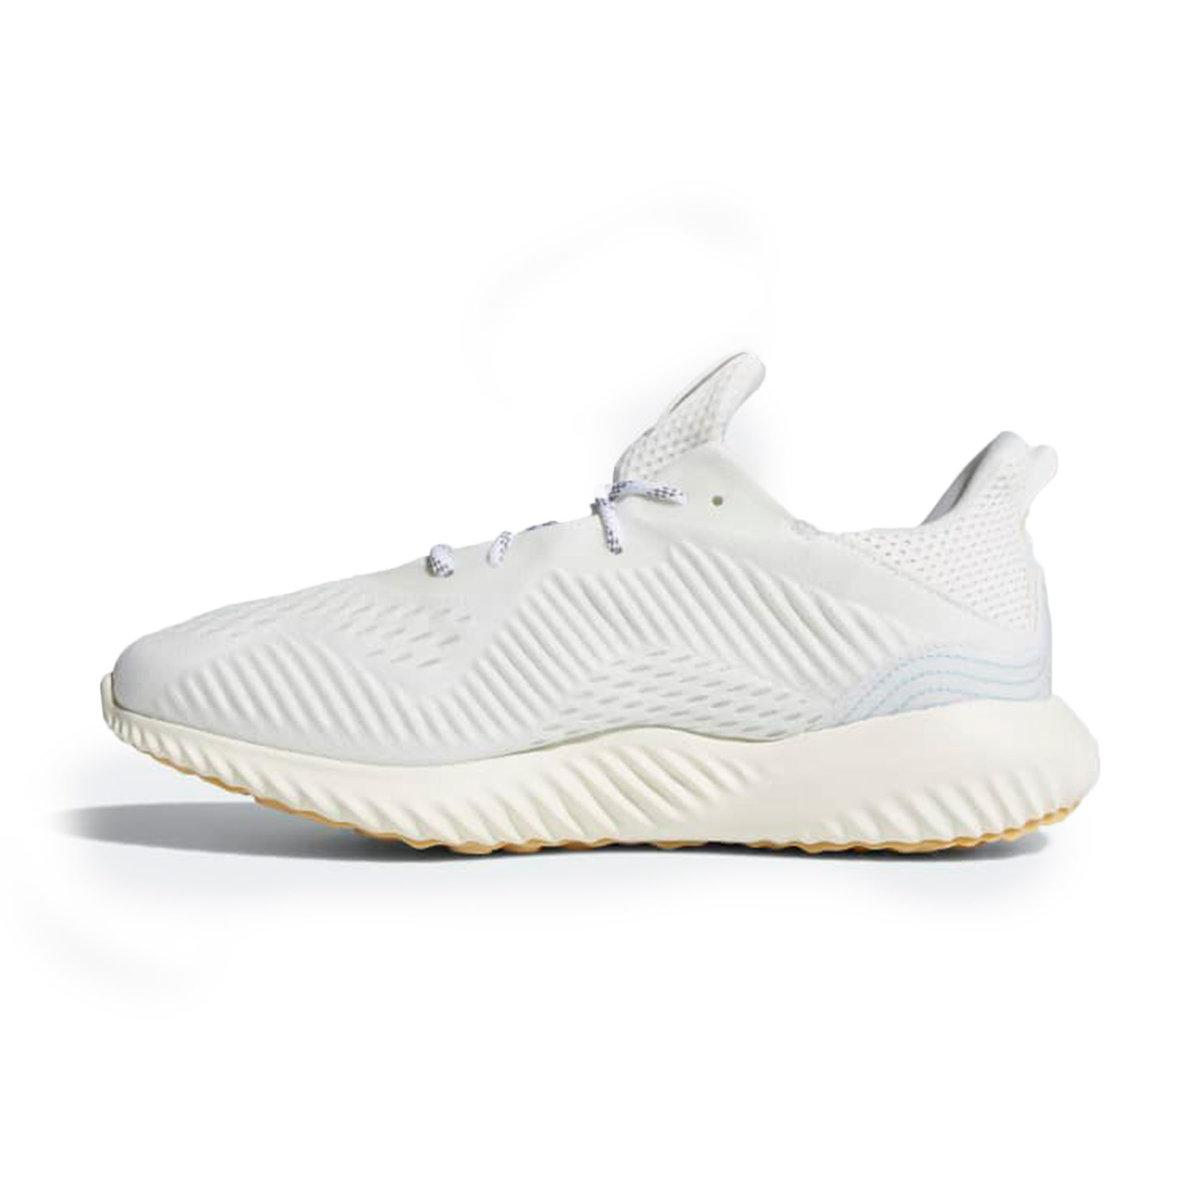 finest selection b93c1 b4e8f Adidas - White Alphabounce Parley Running Shoes for Men - Lyst. View  fullscreen